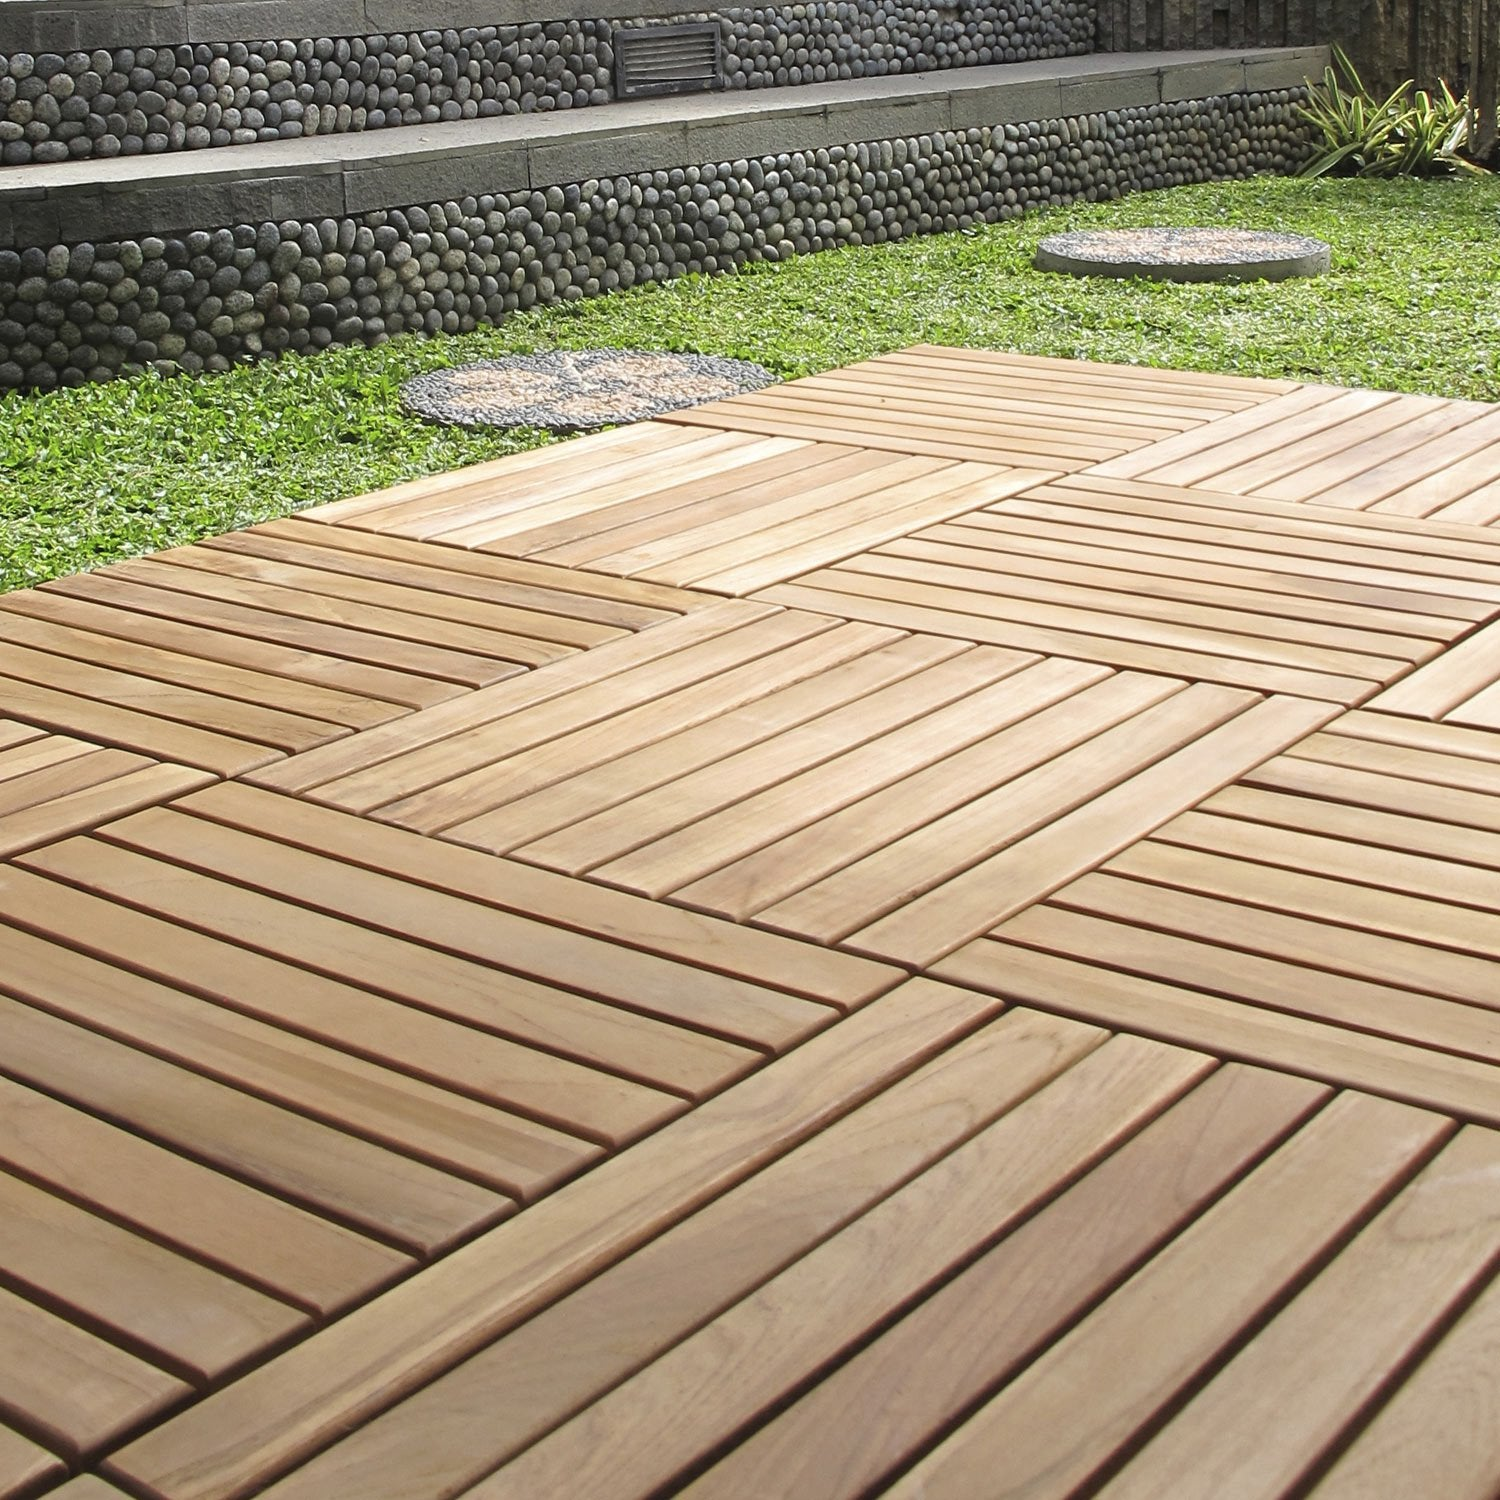 Dalle clipsable en teck marron naturel miel l 40 x l 40 - Dalle clipsable terrasse ...